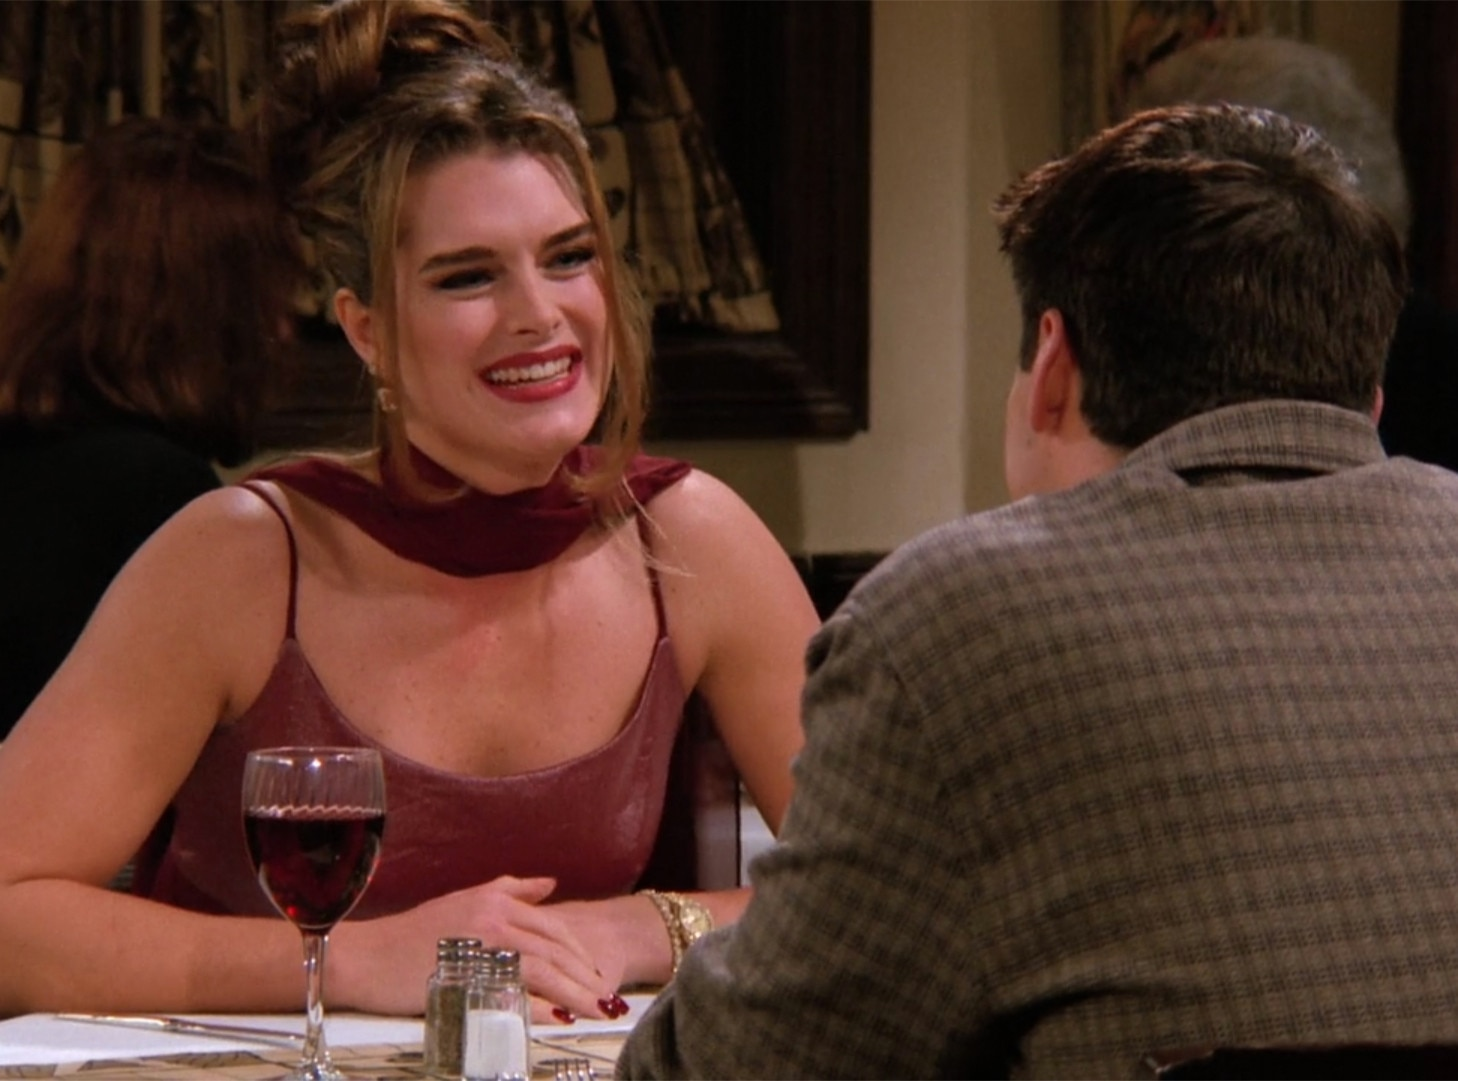 """Erica and Joey,  Friends  -    There are a lot of relationships from Friends we'd like to talk about (and in fact, we will), but Brooke Shields ' cameo as an obsessive Dr. Drake Ramoray fan (who Joey dated despite knowing she was a stalker and that she believed he was actually Drake Ramoray) caused some bonus real-life drama.In her 2014 memoir, Shields wrotethat real-life boyfriend Andre Agassi was so jealous aftershe licked Matt LeBlanc's handon the show that he went home and smashed all of his tennis trophies. Malcolm and Phoebe Remember when Phoebe started dating the guy who was stalking her identical twin sister(who was also Courtney Cox's then boyfriend, David Arquette)? She thought that if he started dating her, he might stop stalking Ursula, and surprise, he did not. Monica and Young Ethan Sorry, sorry, one more Friends one, just because we can't forget that time Monica accidentallydated and SLEPT WITHa 17 year-old in season one. She told him she was 22, he told her he was a """"senior,"""" and the whole thing was, as Monica correctly said, icky!"""